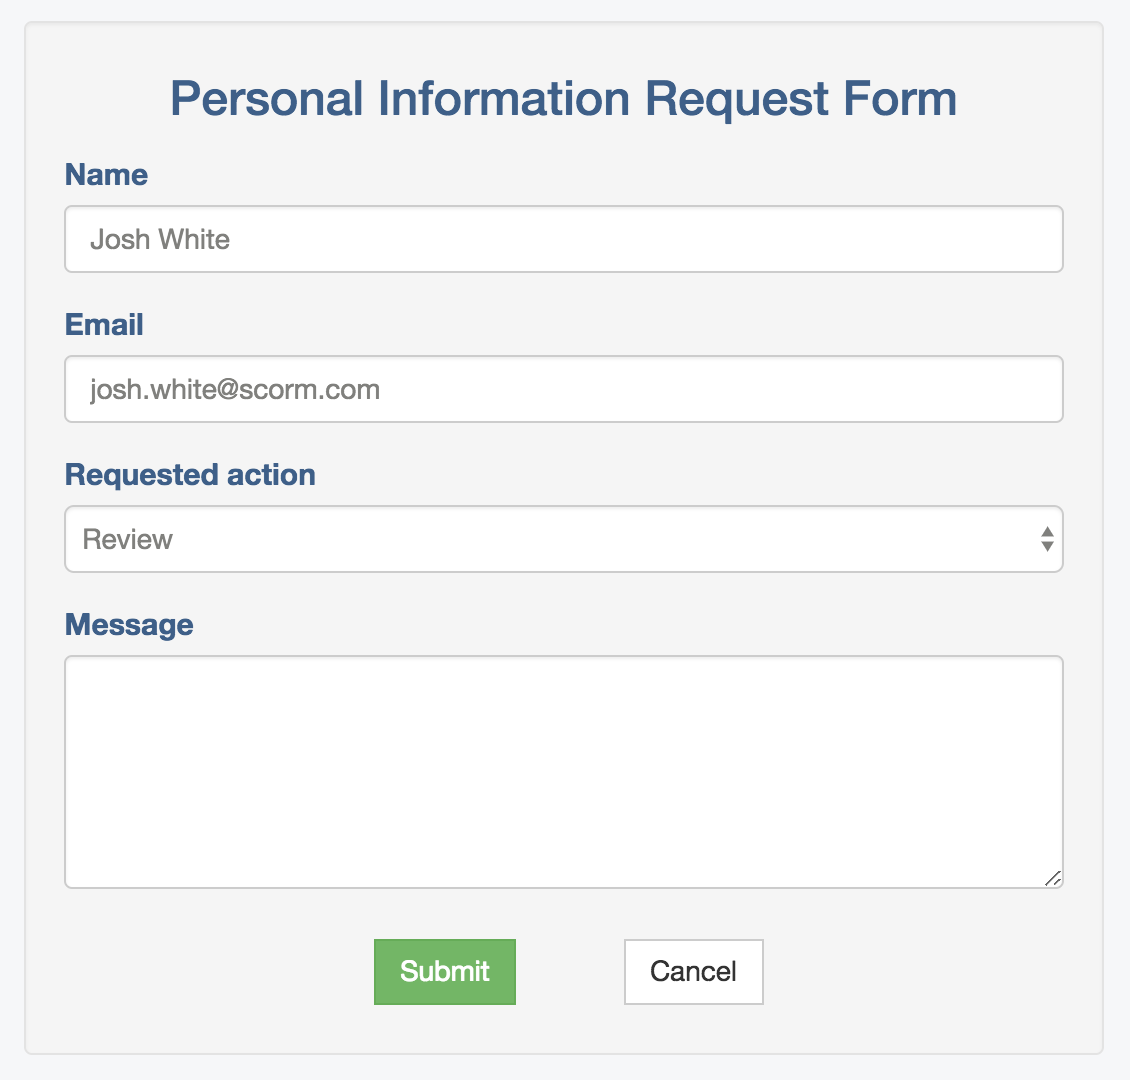 Requesting a review or deletion of personal data in SCORM Cloud